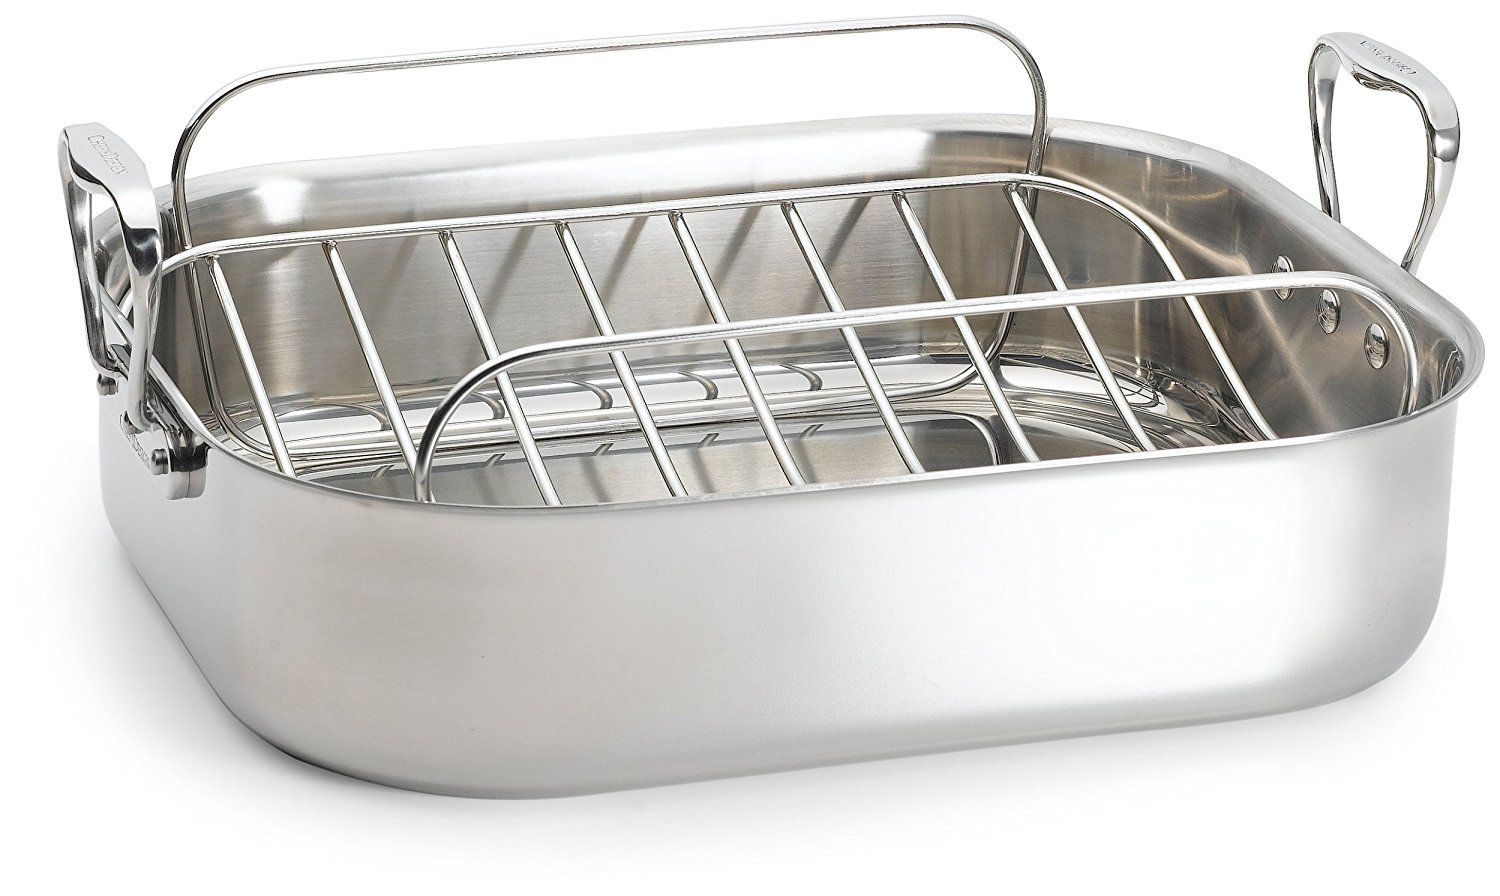 Chefs design 1675 inch stainless steel french roaster